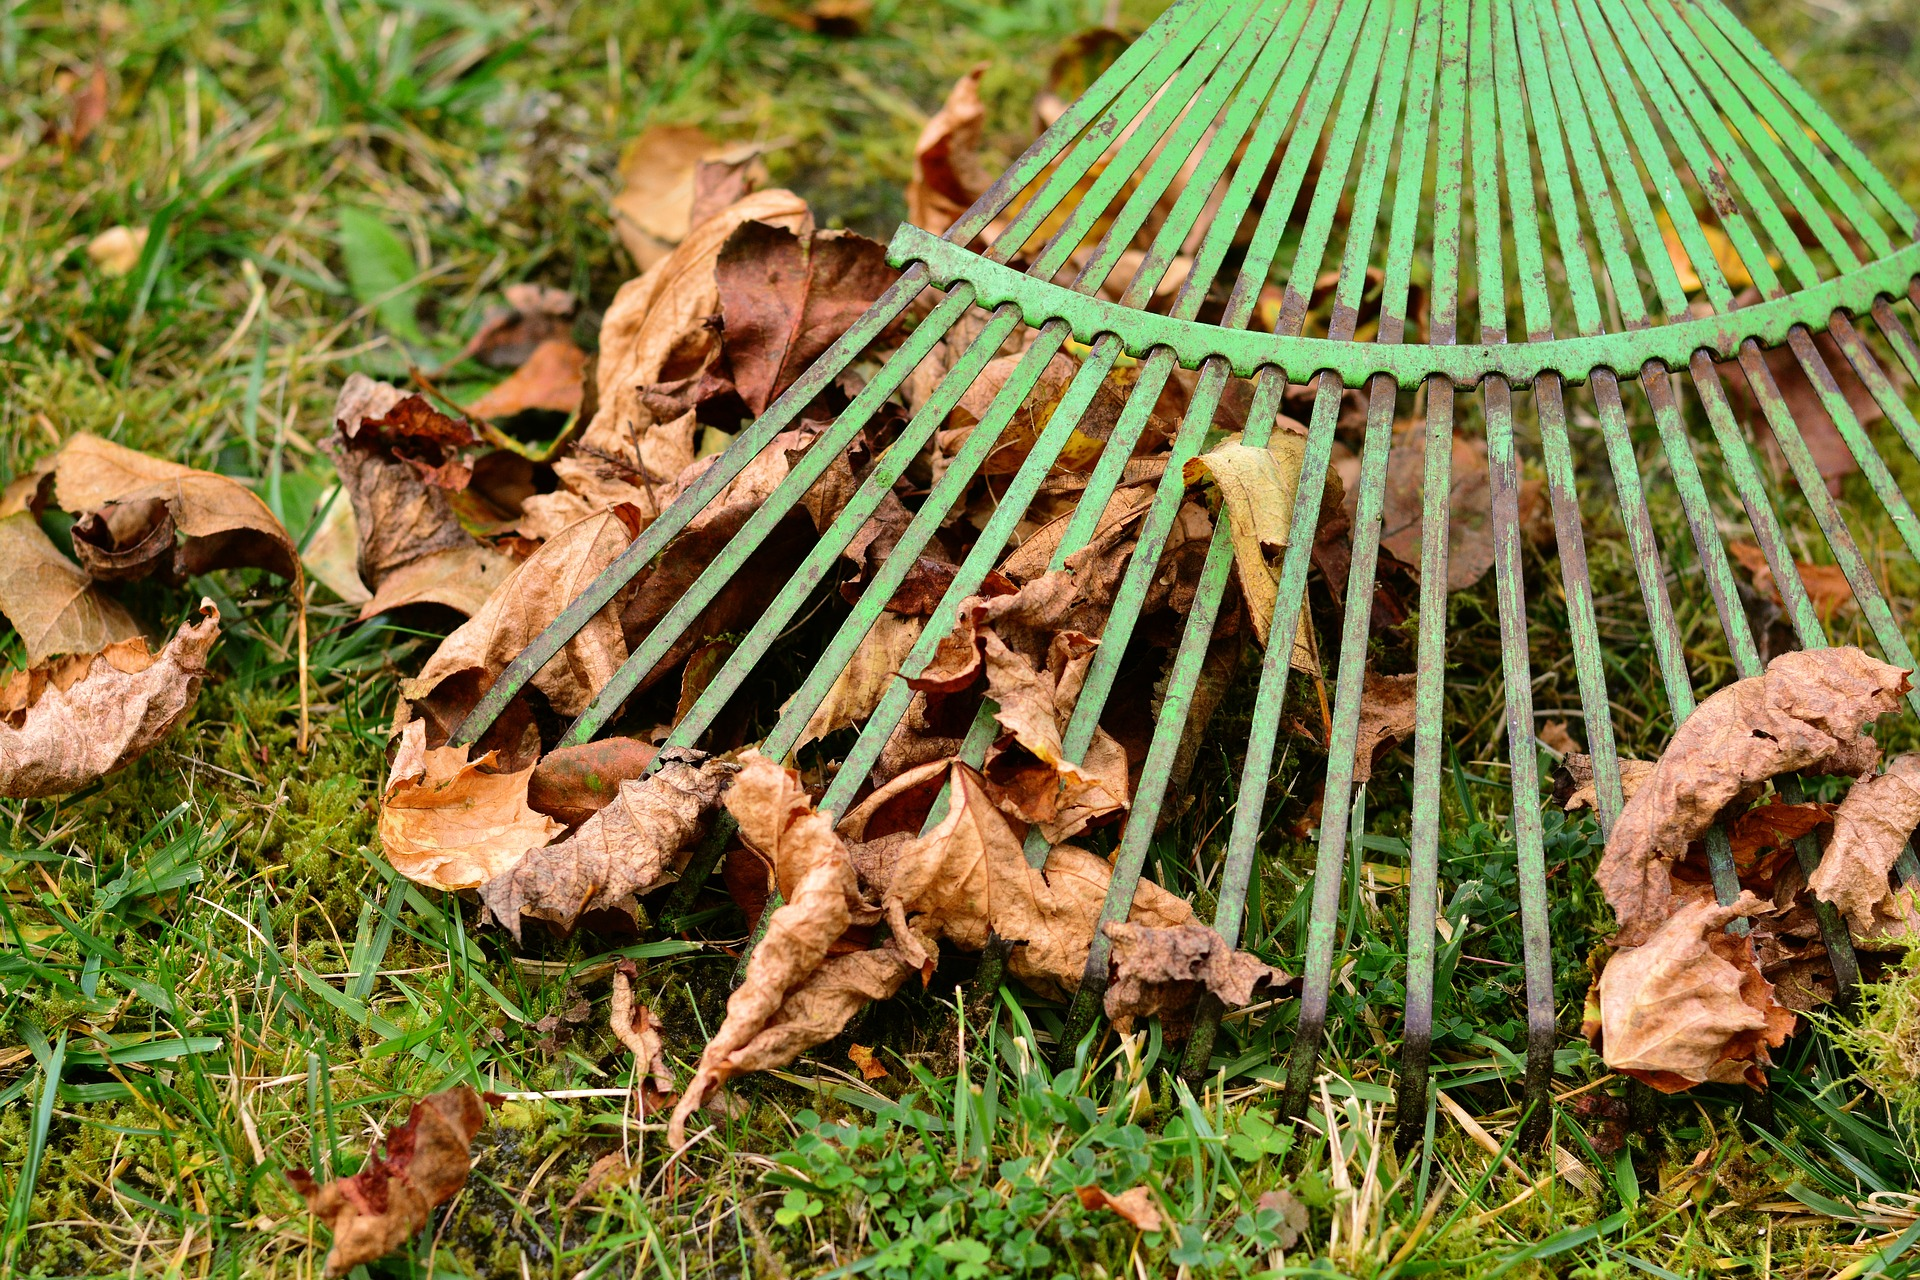 How to Avoid Injury While Raking Leaves